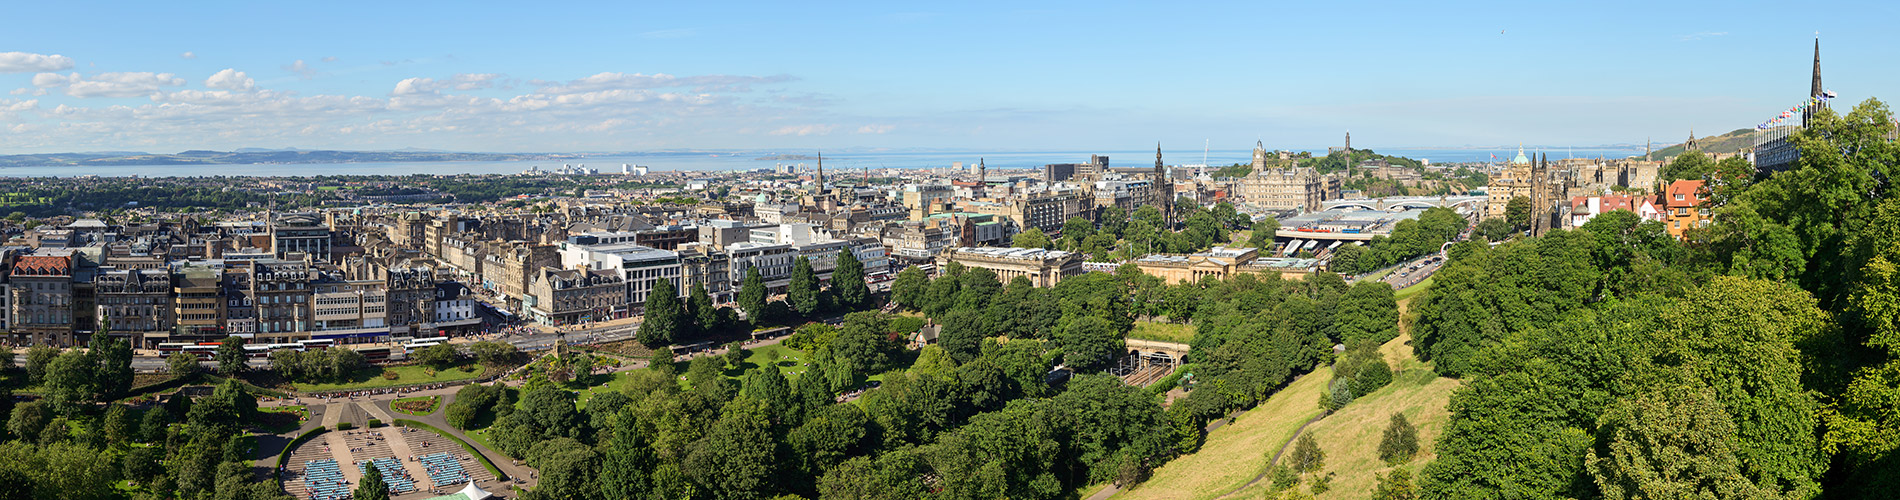 Selling and Buying Property in Edinburgh